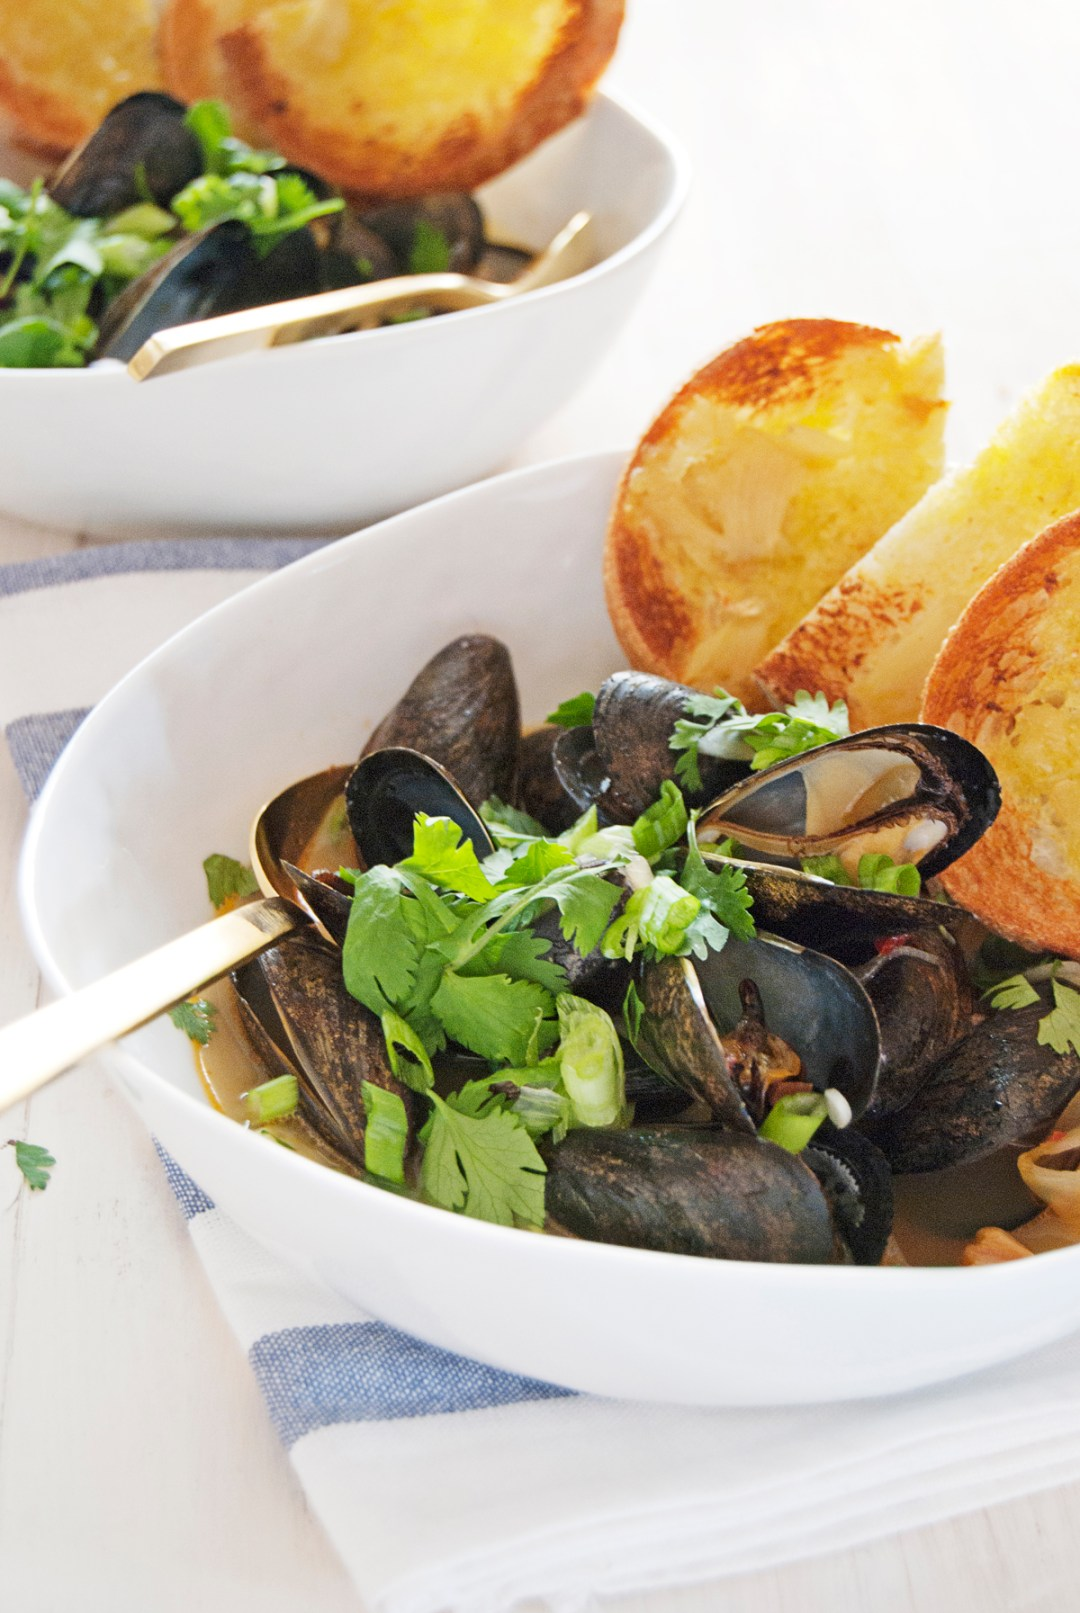 Steamed mussels: Asian style! With a Thai chili fennel broth and crunchy garlic toasts for dipping.